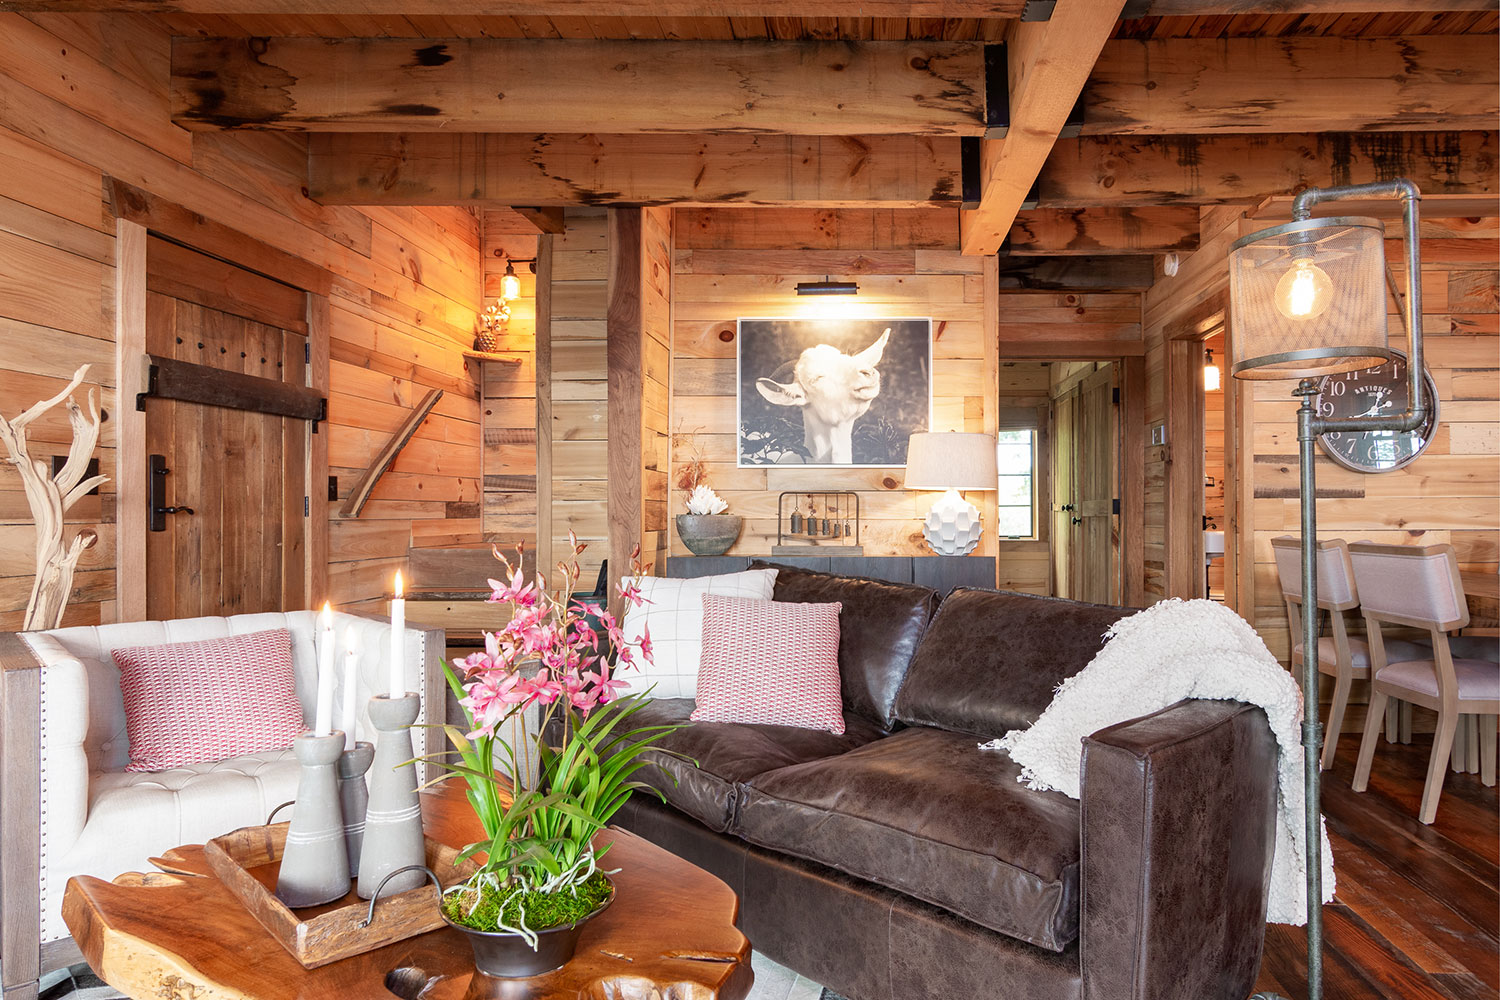 Cabin With a View, Stratton Design Group